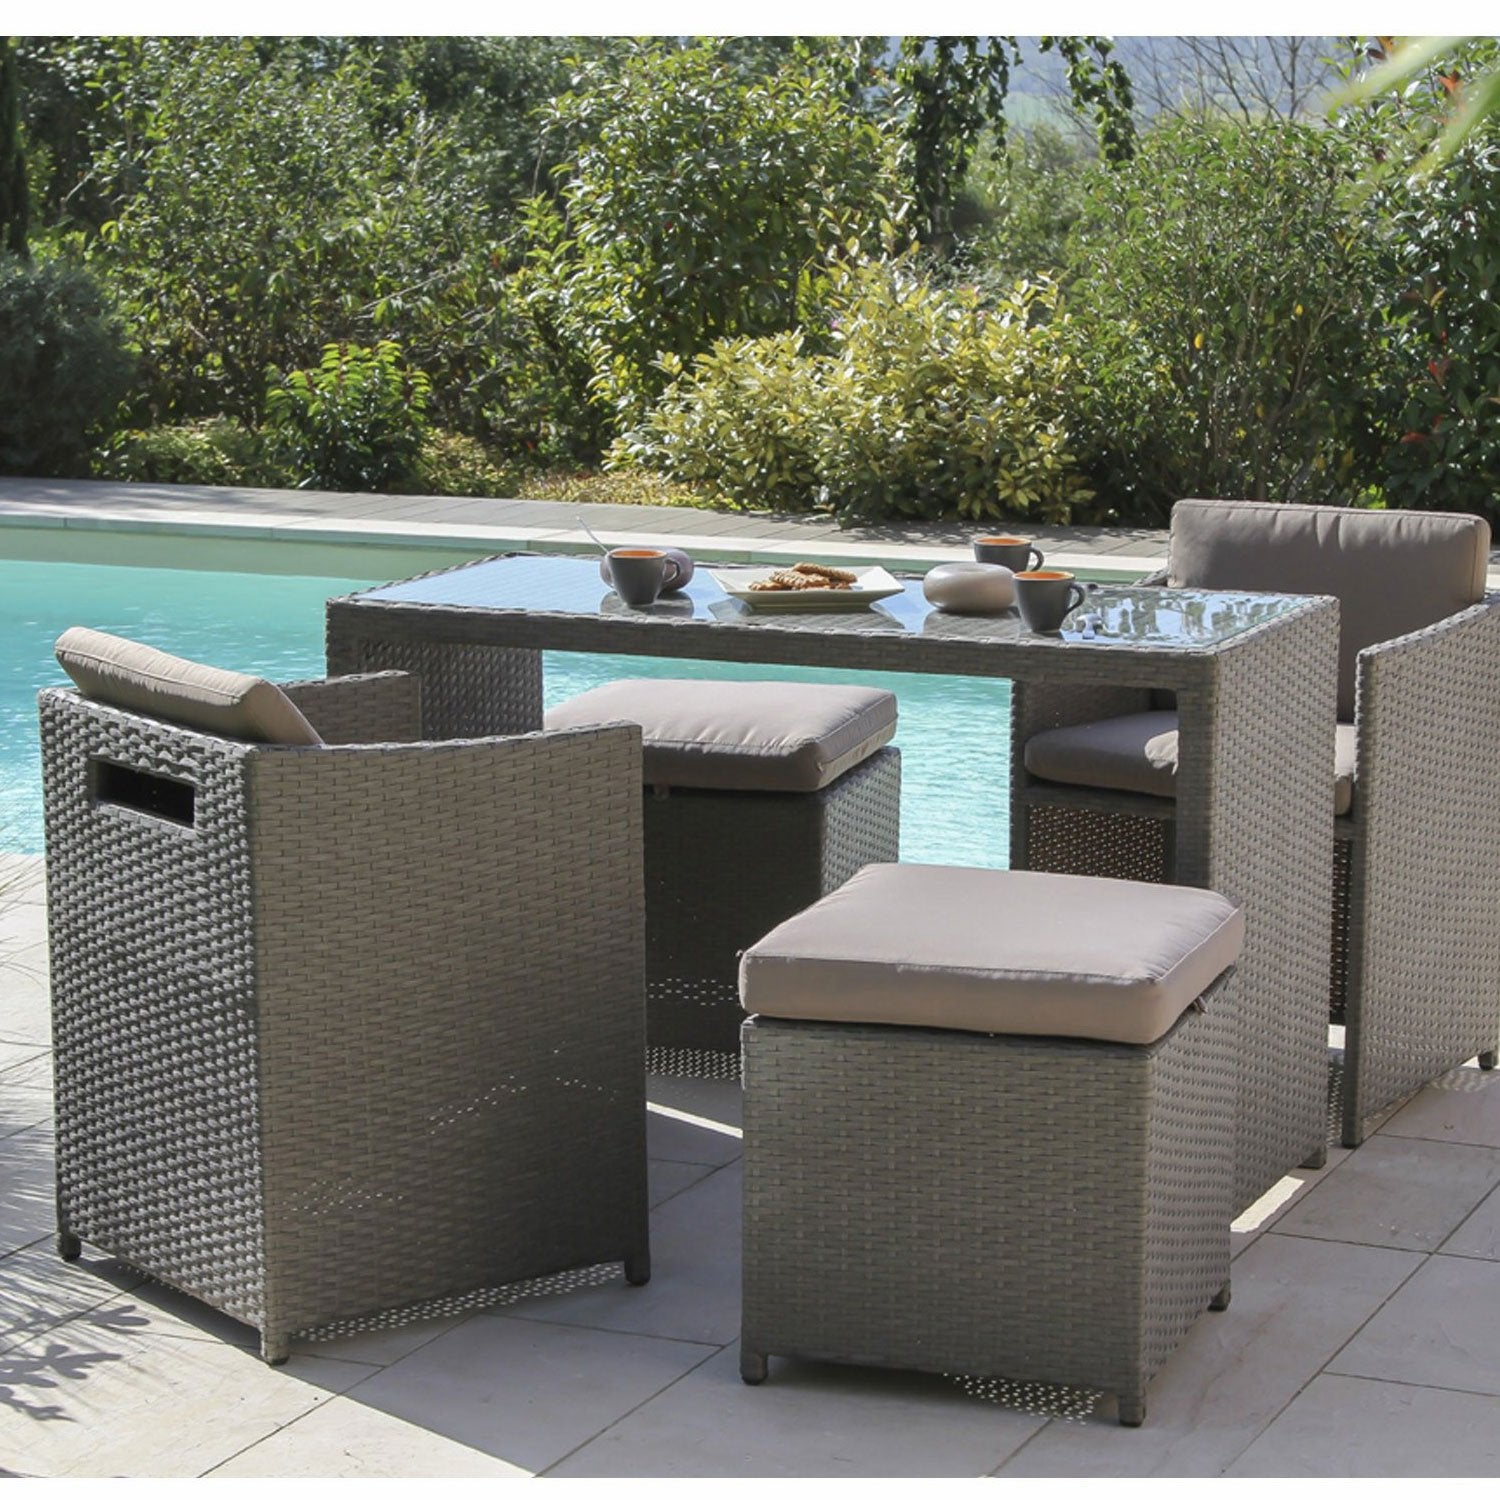 Salon de jardin foggia r sine tress e gris 1 table 2 for Salon de jardin tresse gris anthracite